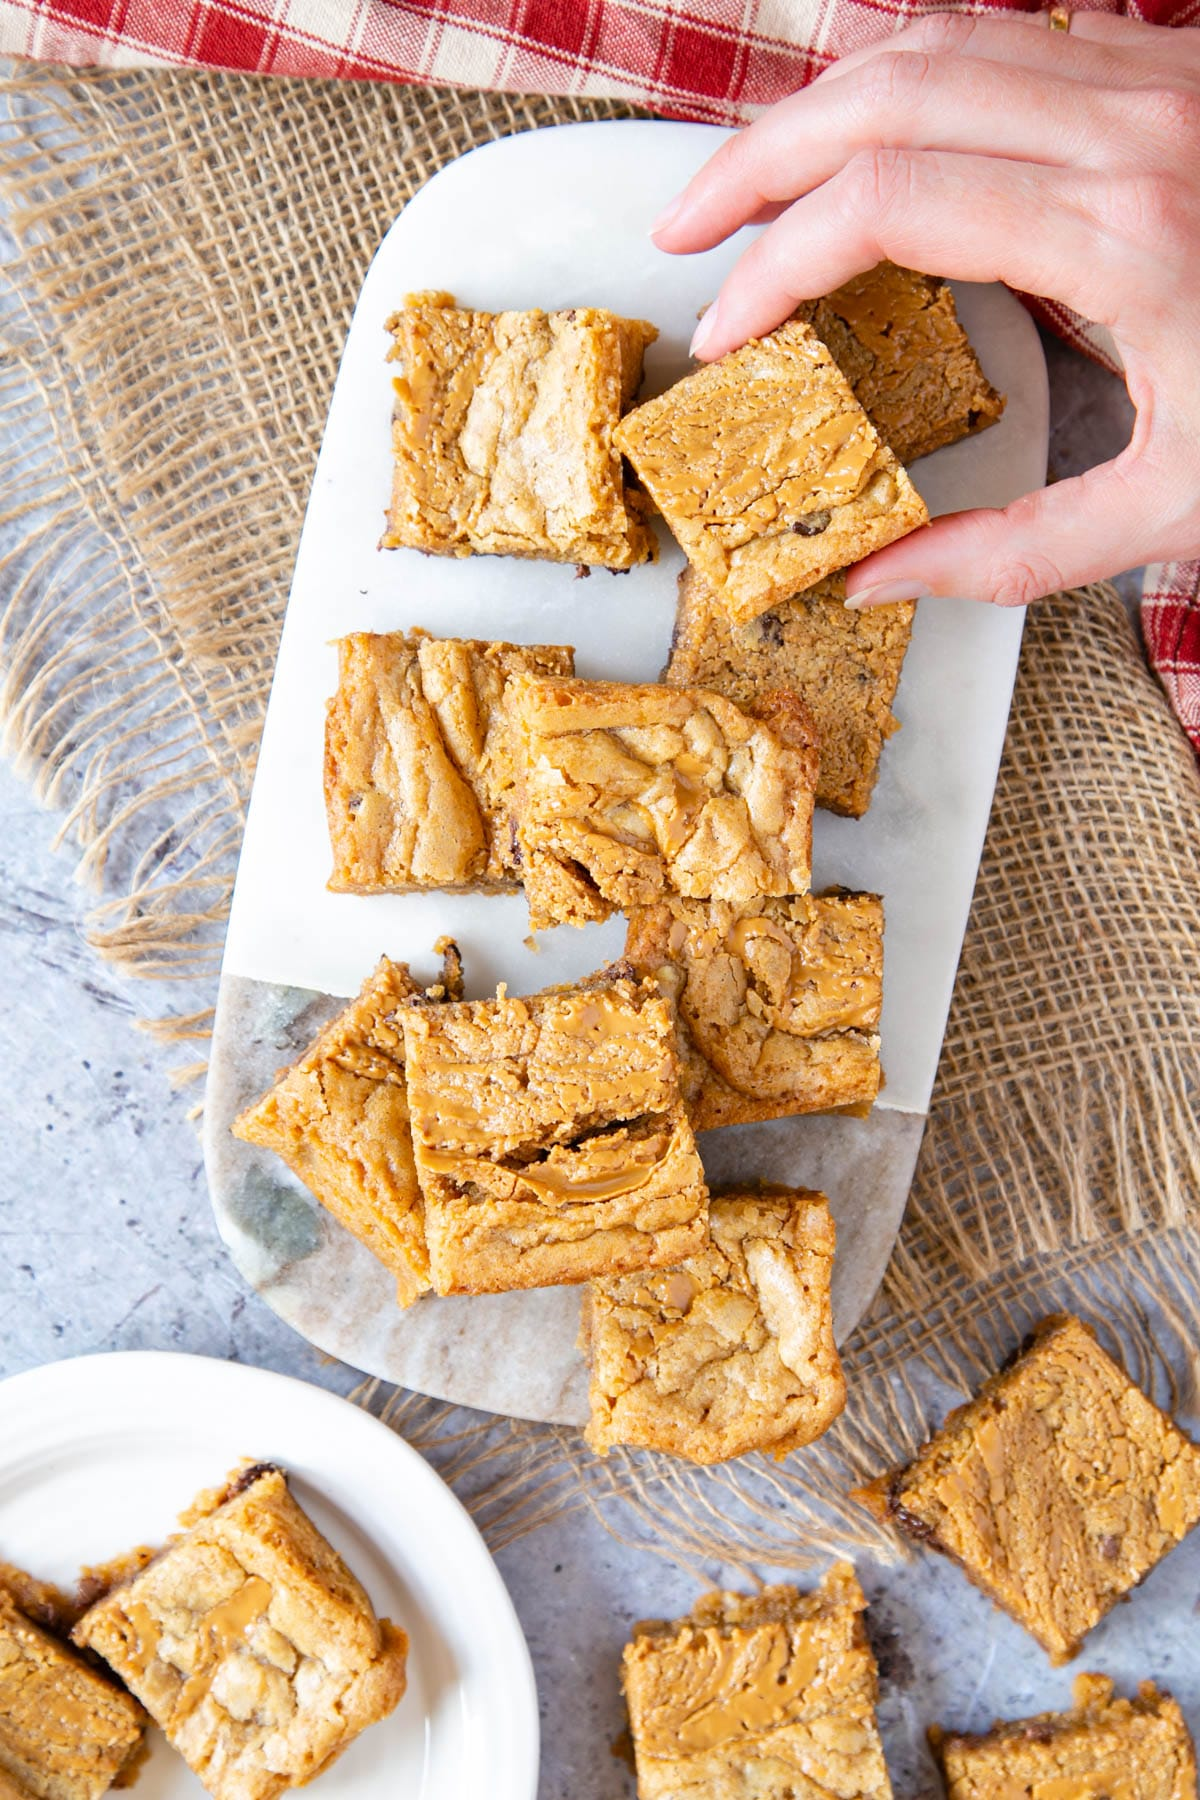 A marble board stacked with peanut butter blondies; a hand has picked one up.